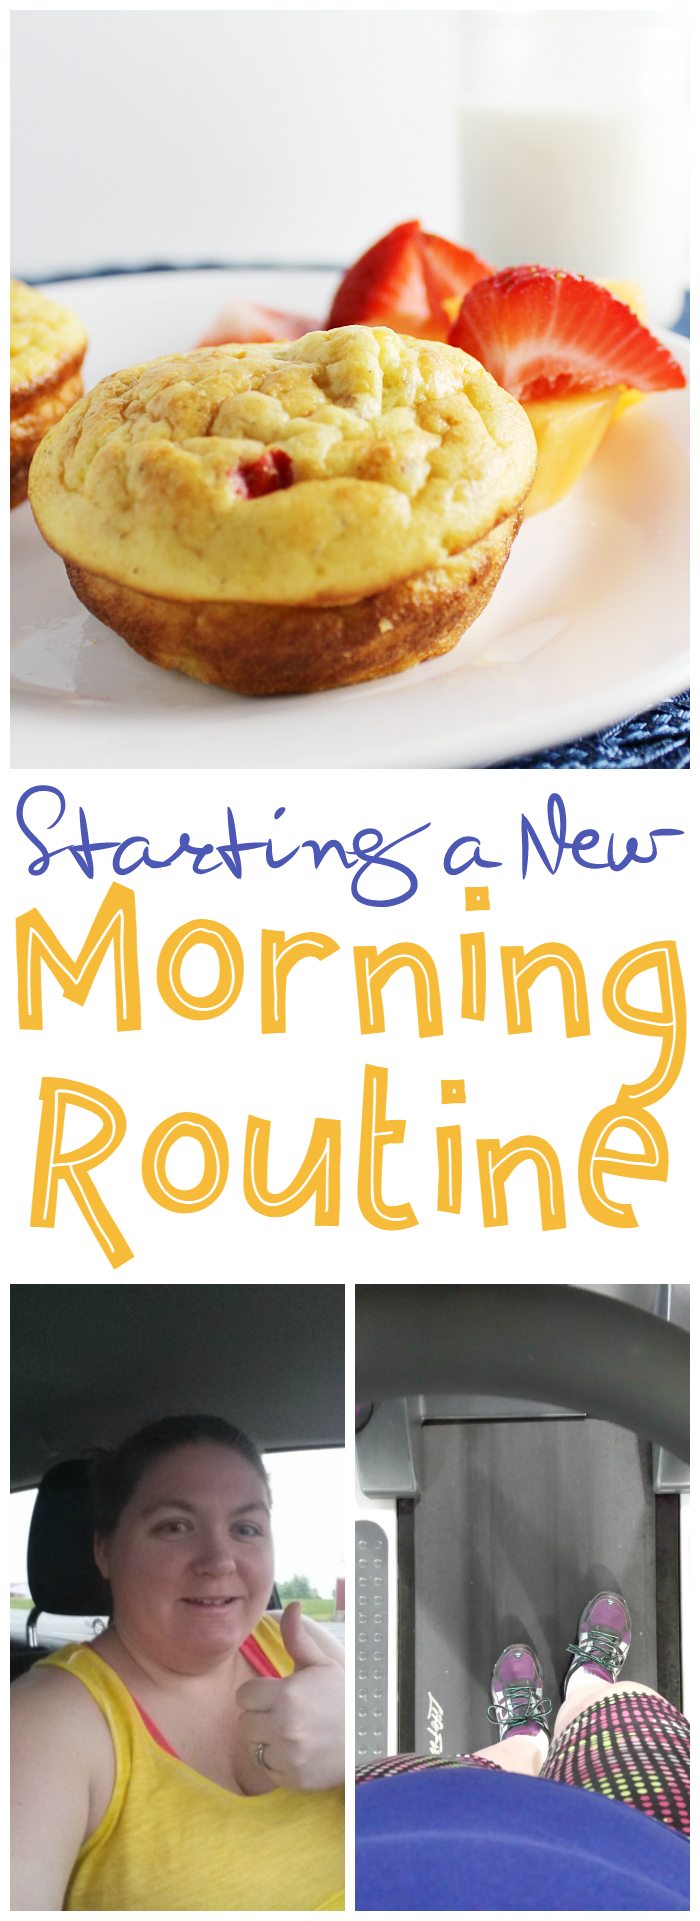 Starting a new routine is definitely a challenge, especially if it's a morning routine. My new morning routine consists of hitting the gym, eating a wholesome breakfast, and starting my day productively.